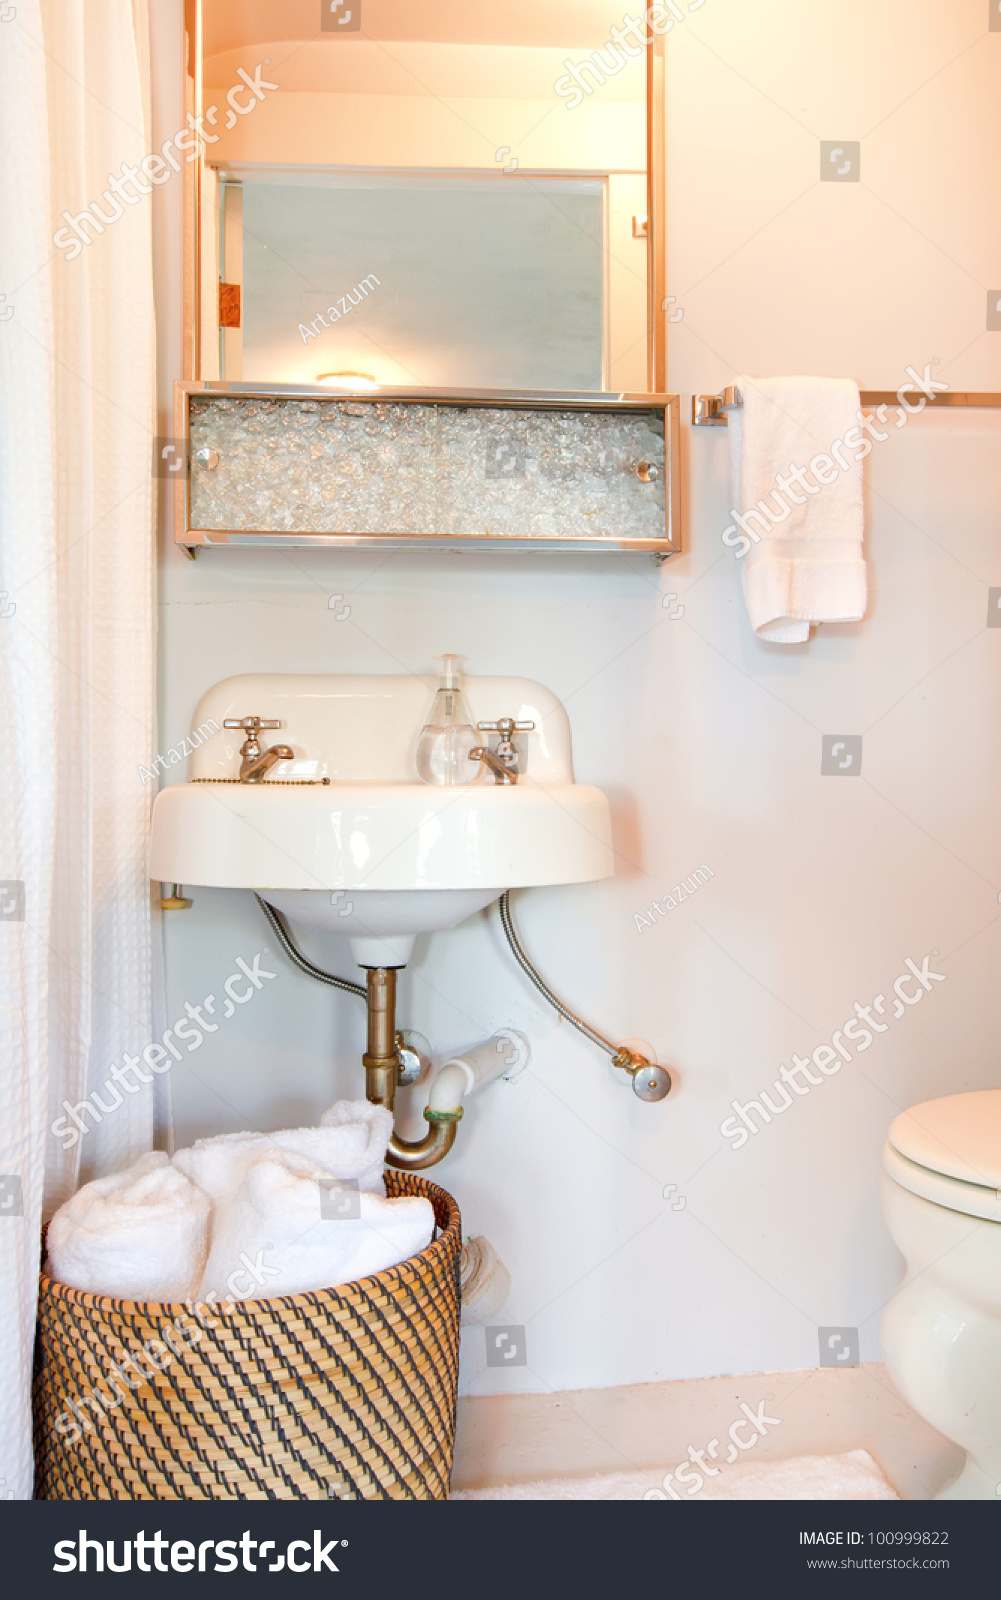 Small Blue Bathroom With Antique Sink And White Stock